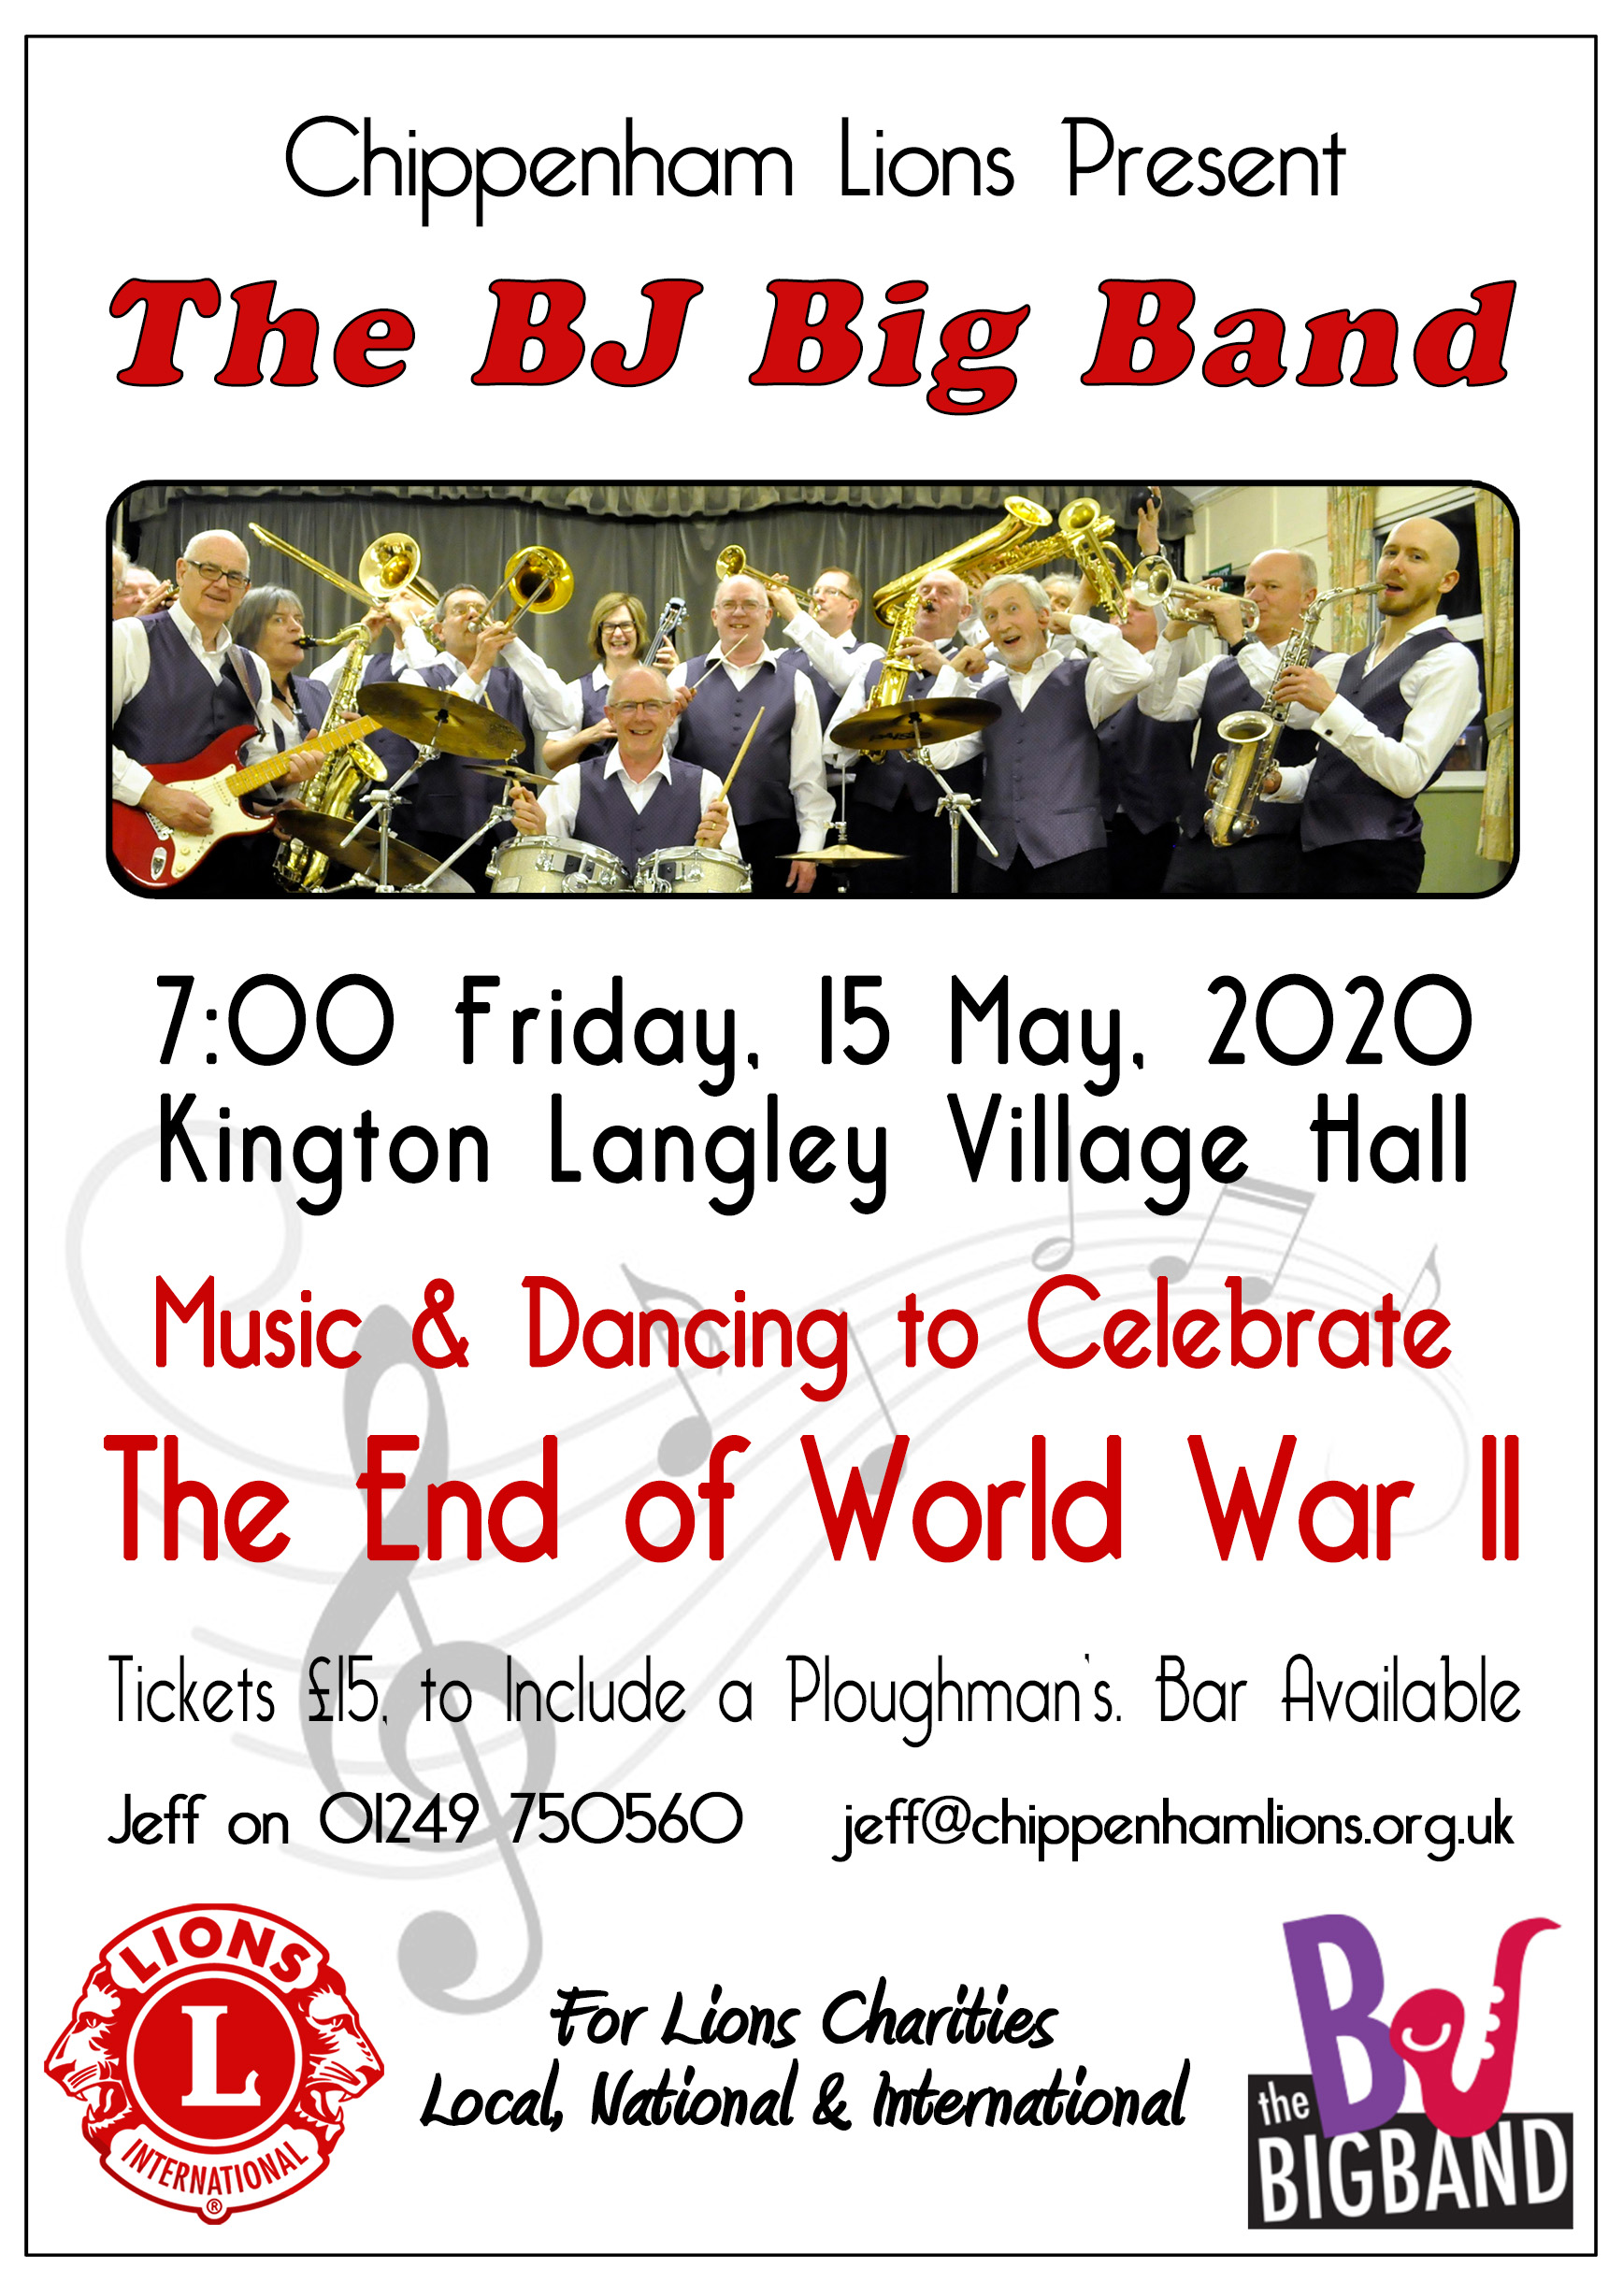 Big Band Event to Celebrate 75 Years Since the End of WWII